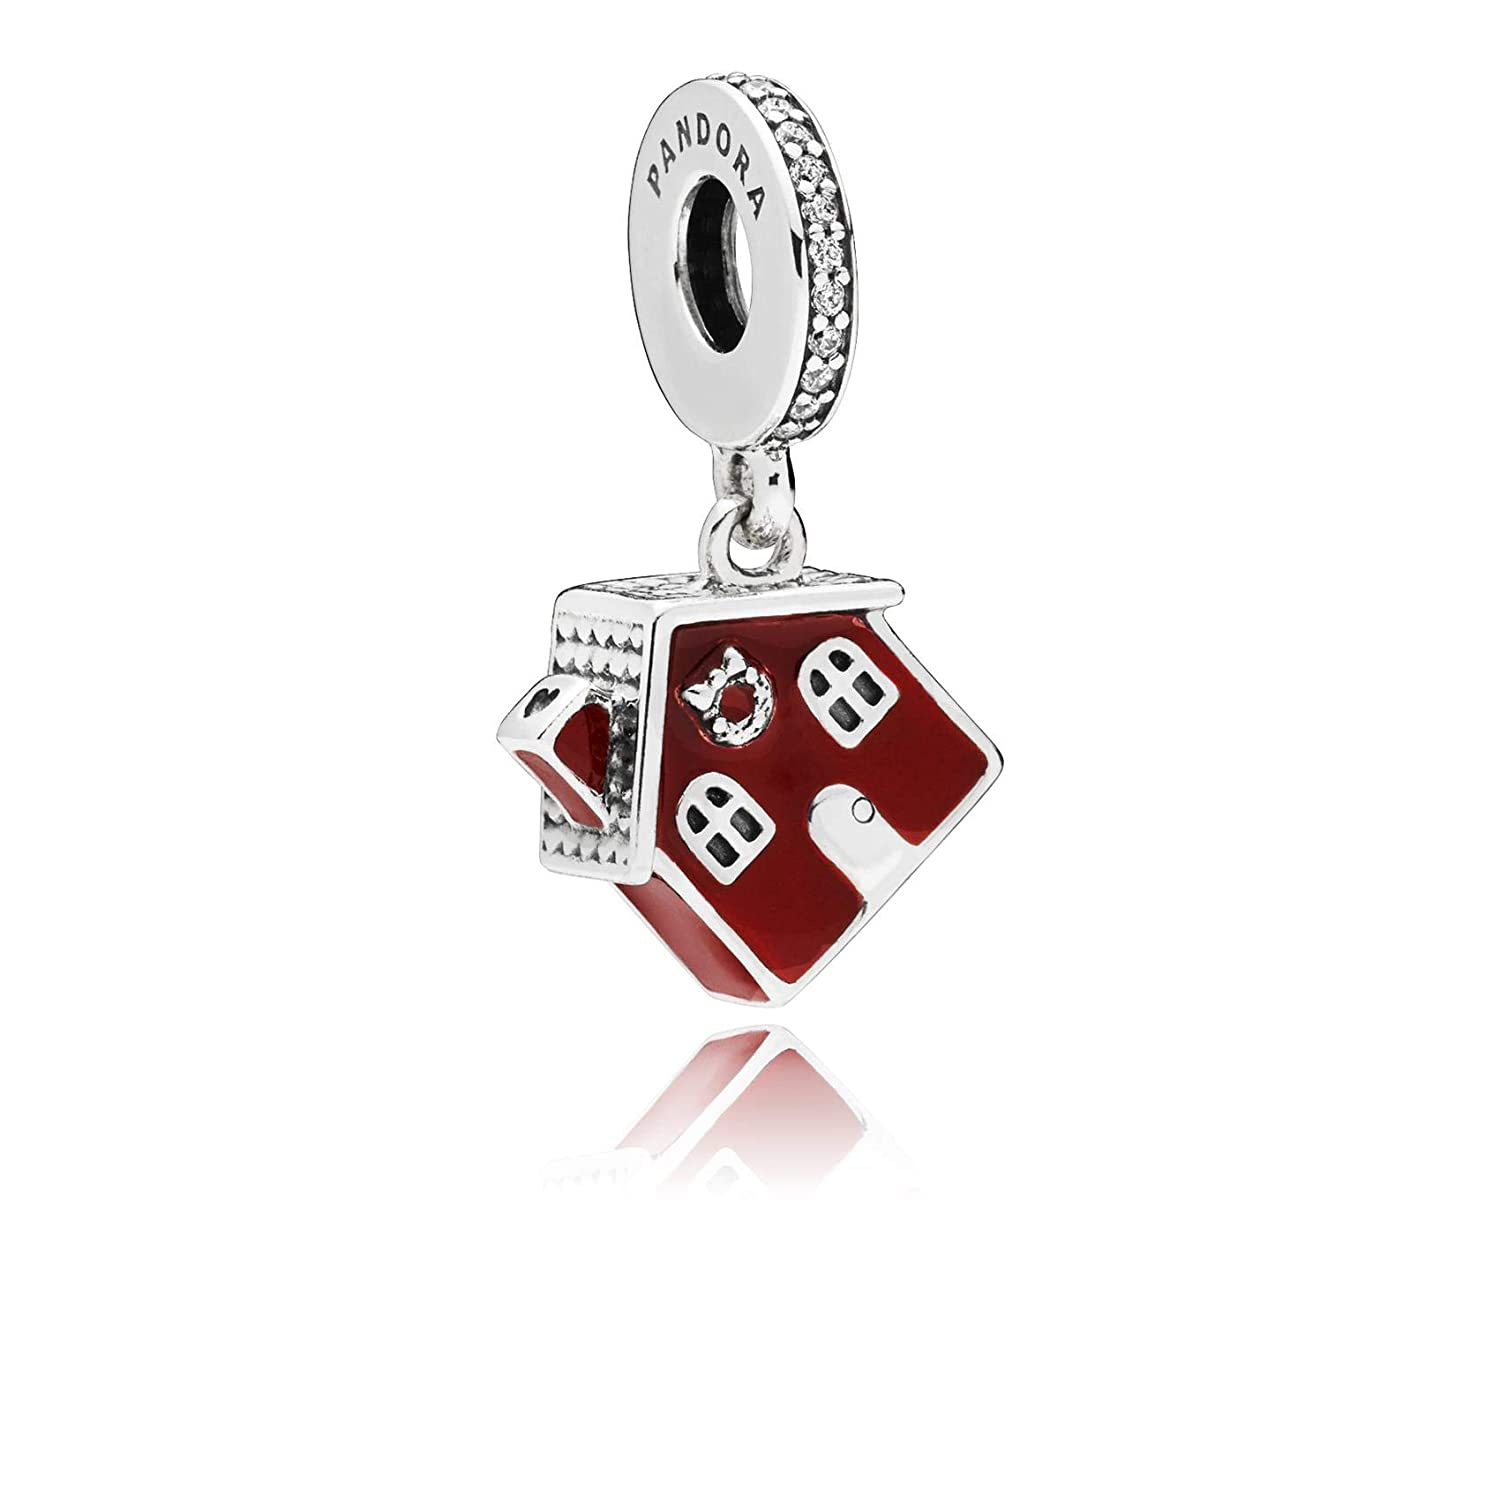 2fd70d9b6 Amazon.com: Pandora Cozy Christmas House Dangle Charm 797517EN27: Jewelry